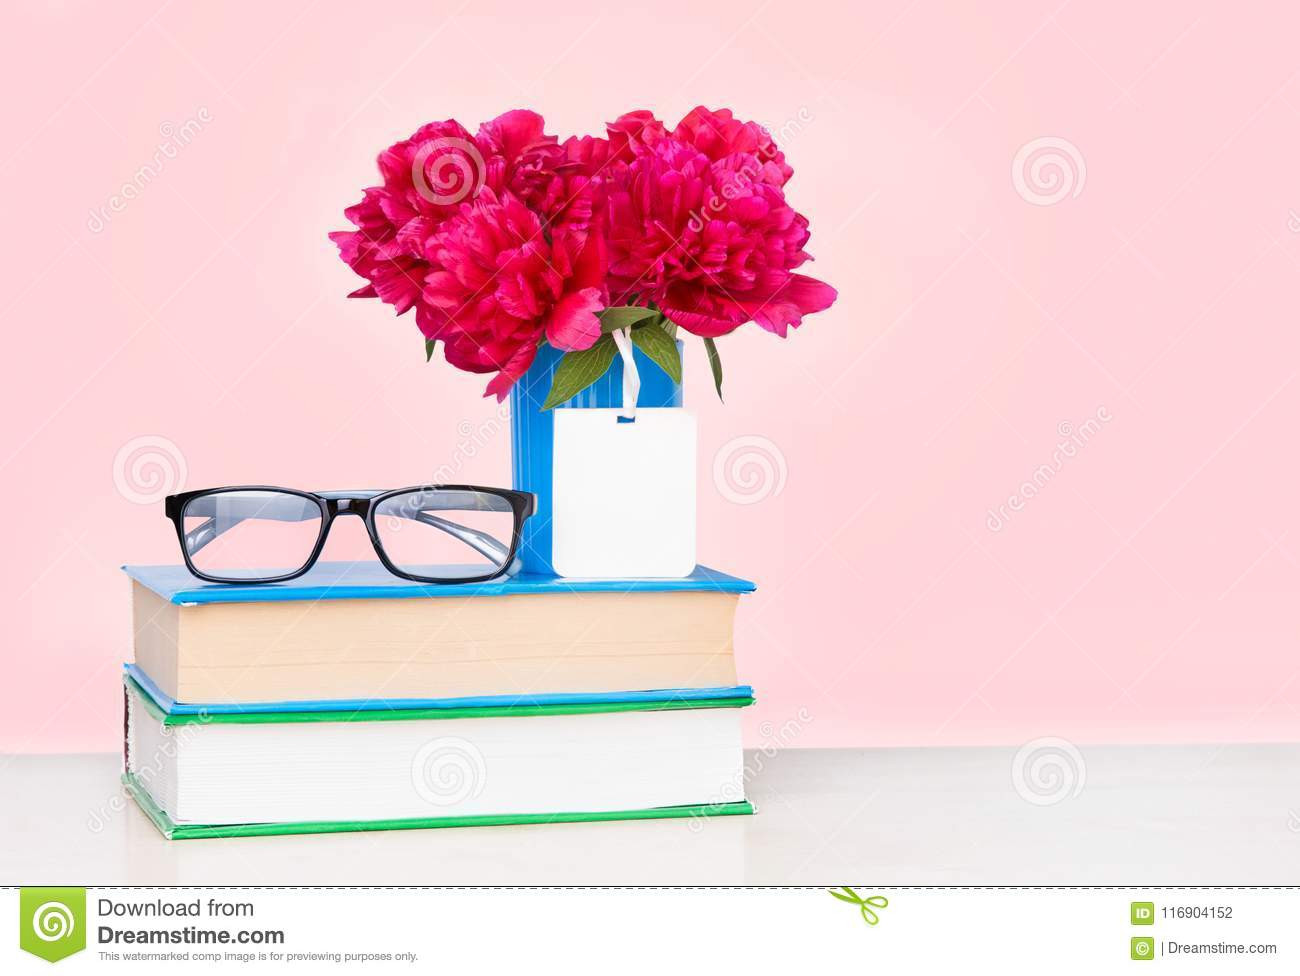 stacked teacup vase of a pile of books and a vase of flowers on a wooden table stock photo regarding a pile of books and a vase of flowers on a wooden table